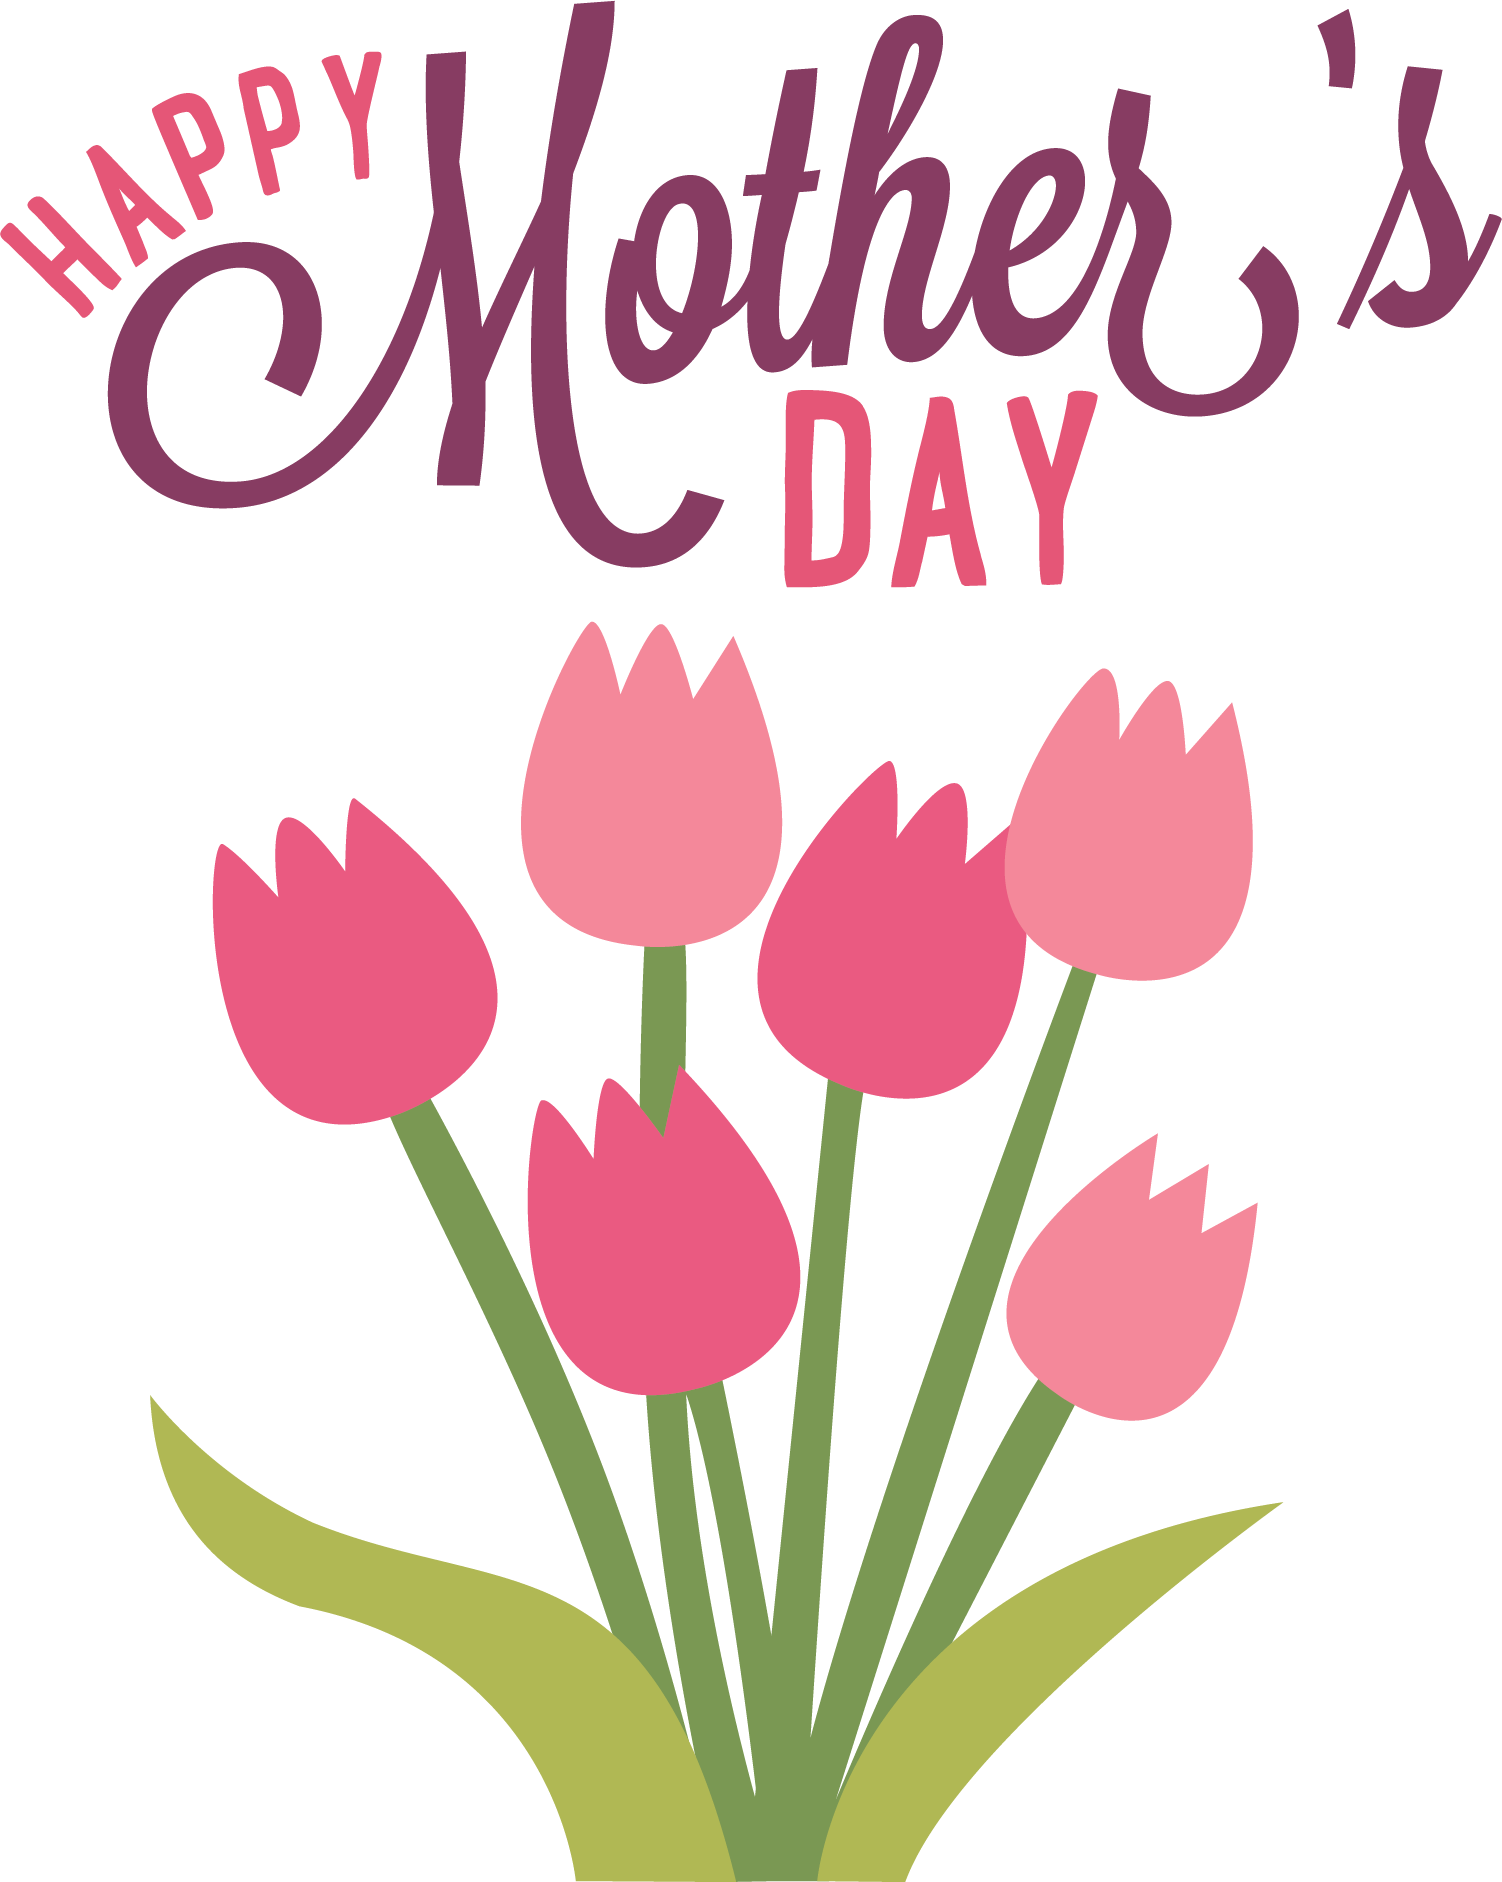 flowers and mothers day image